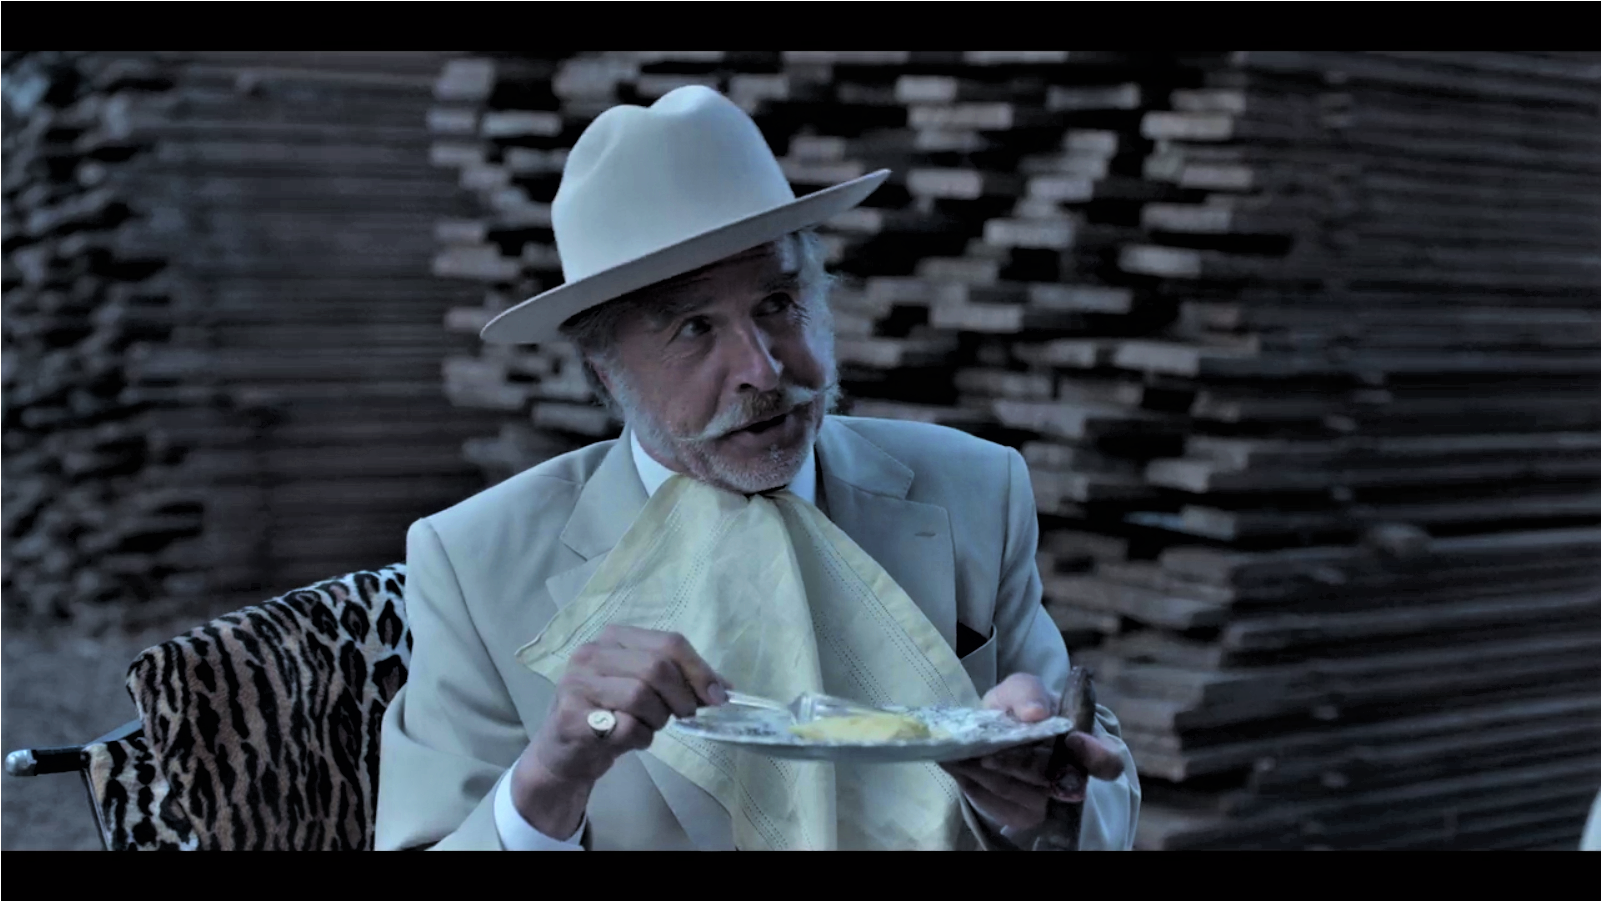 In this picture, Sir can clearly be seen eating an omelette which is quite flat and dull,rather than soft and pillowy.